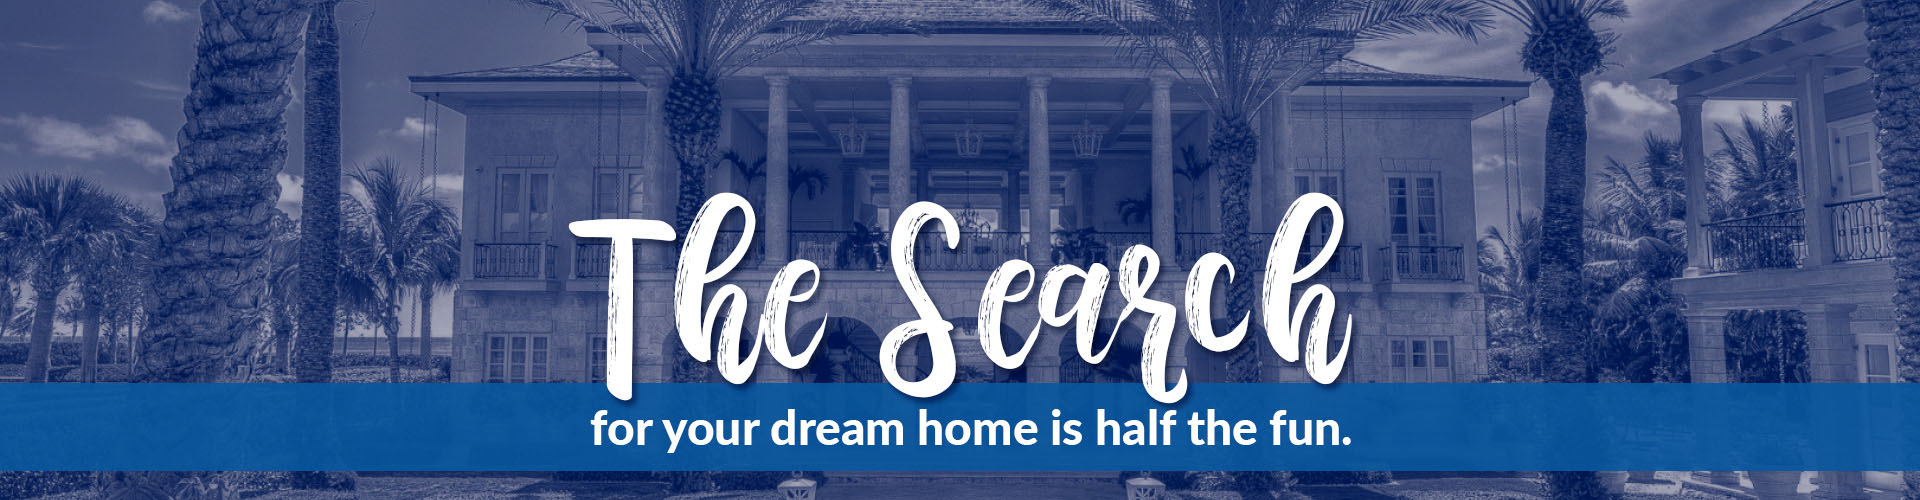 The search for your dream home is half the fun.